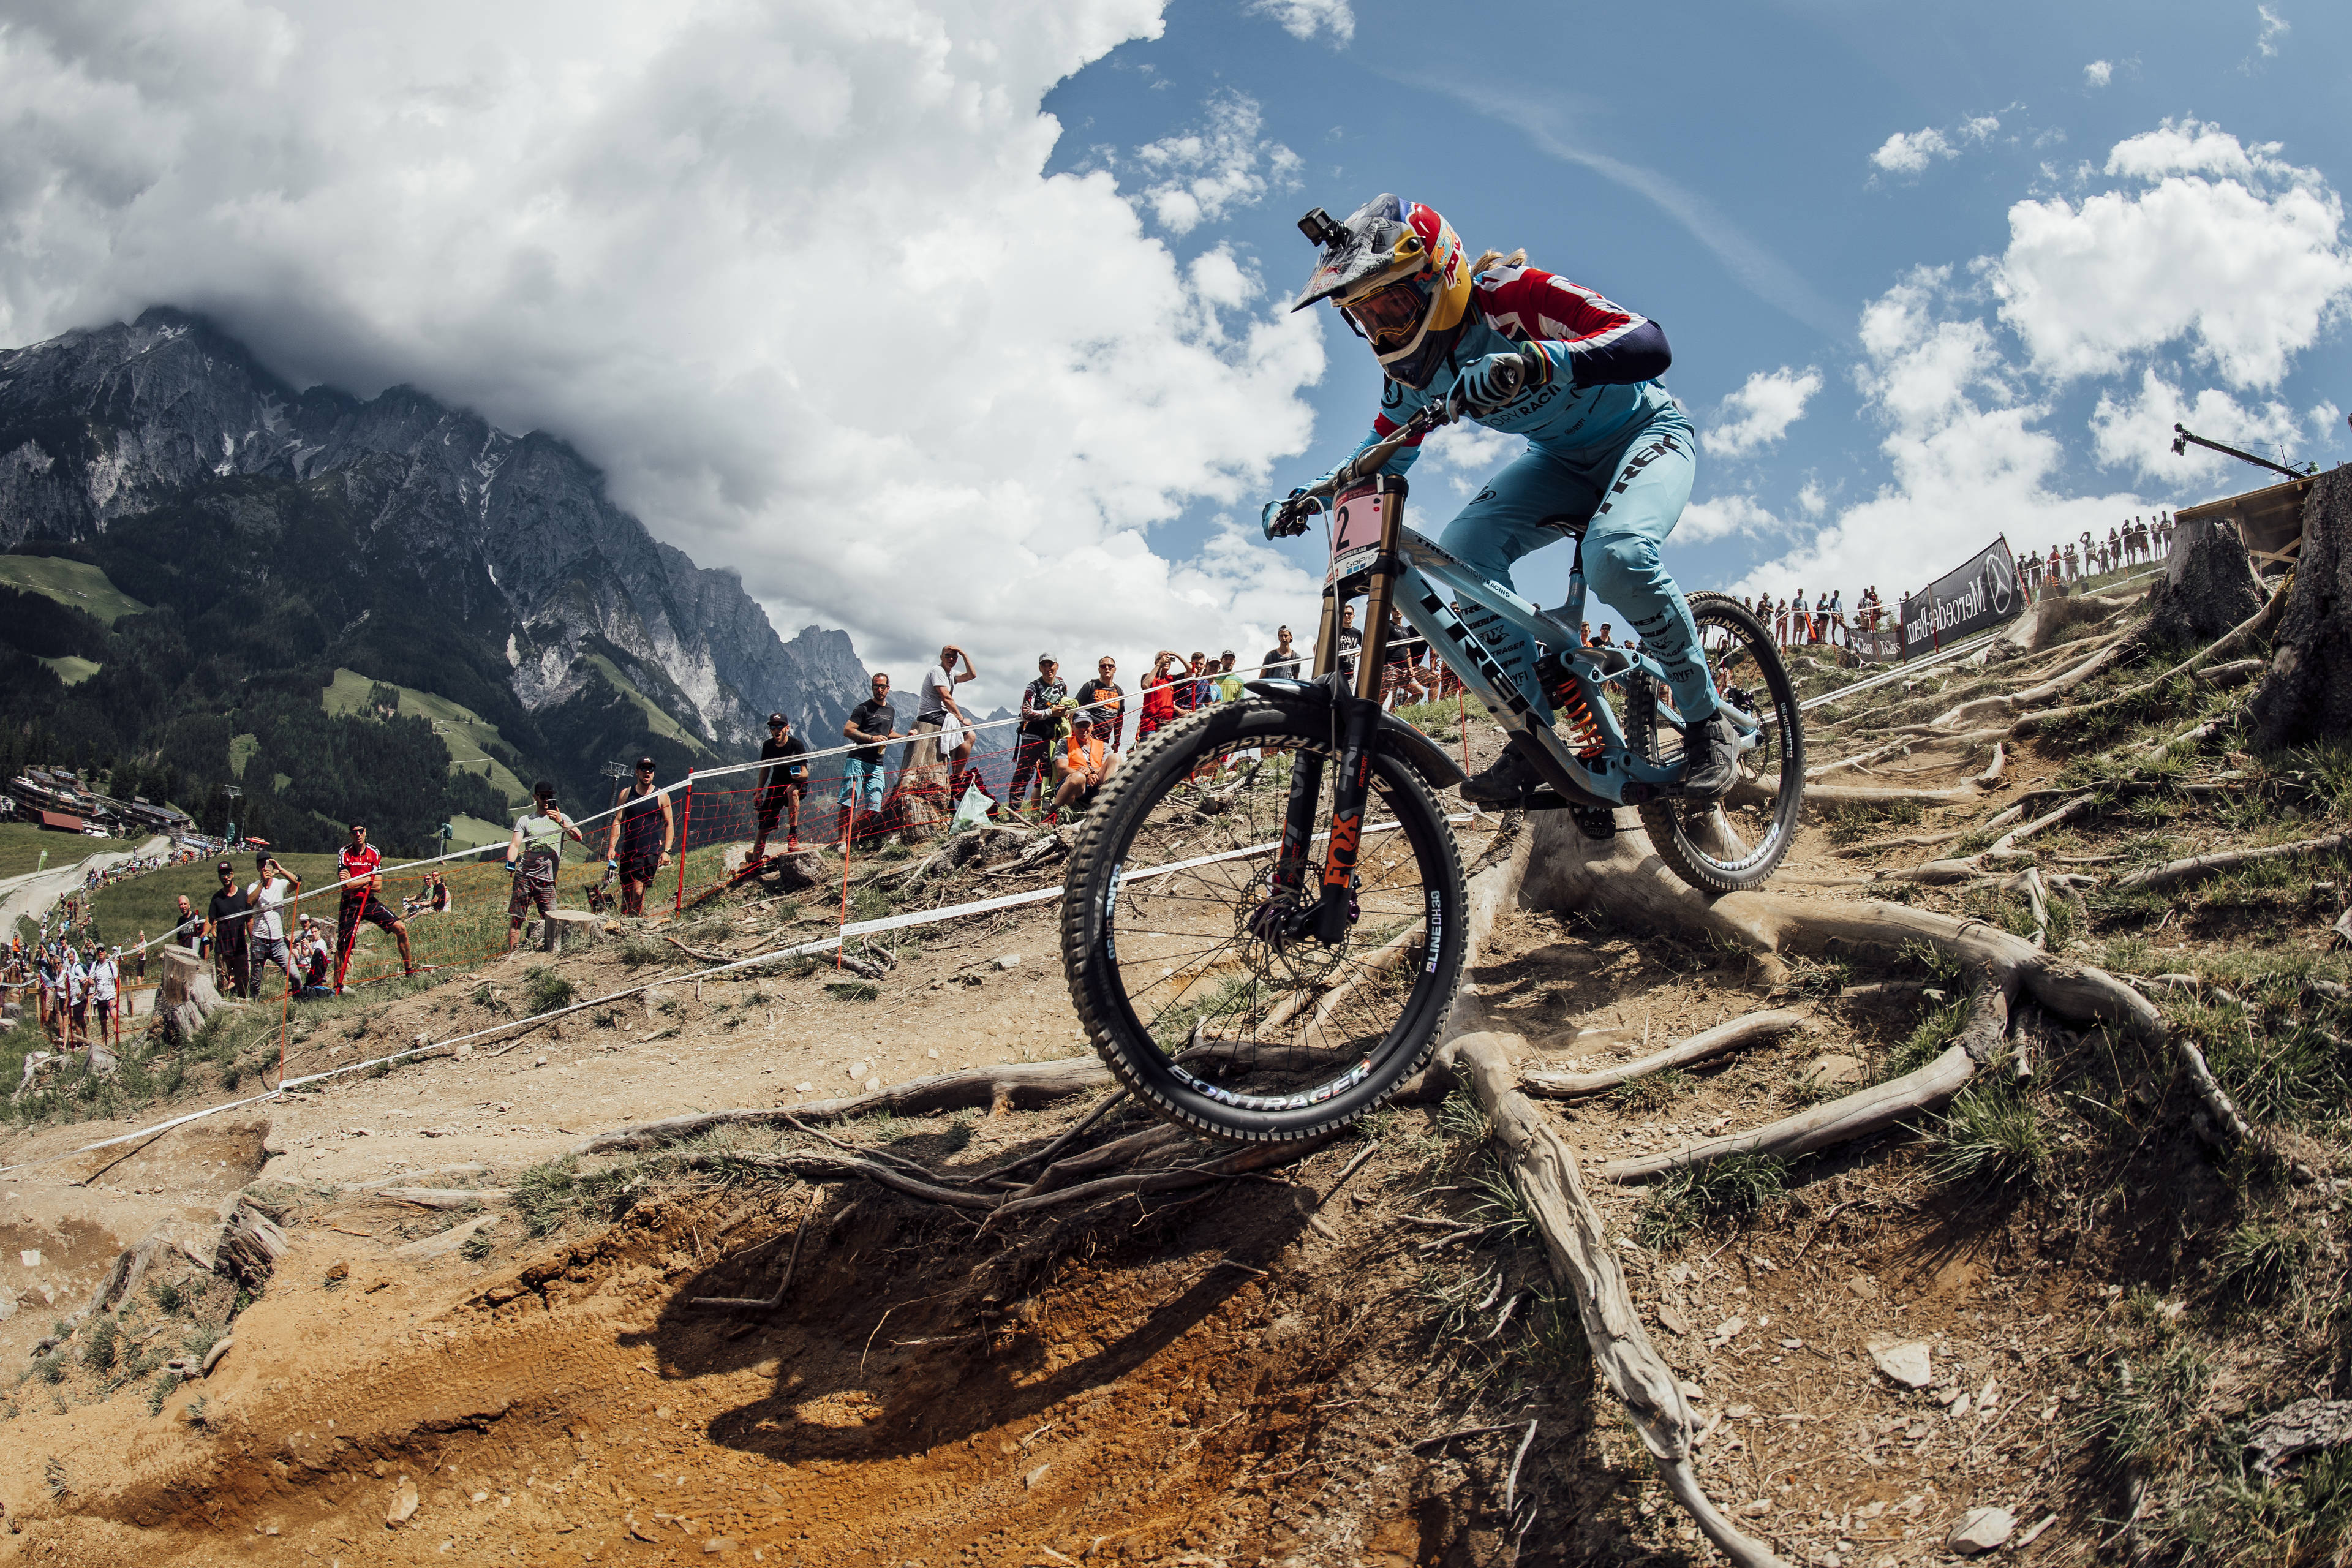 e0253061b3e Rachel Atherton performs at UCI DH World Cup in Leogang, Austria on June  10th, 2018 – Photographer Credit: Bartek Wolinski/Red Bull Content Pool